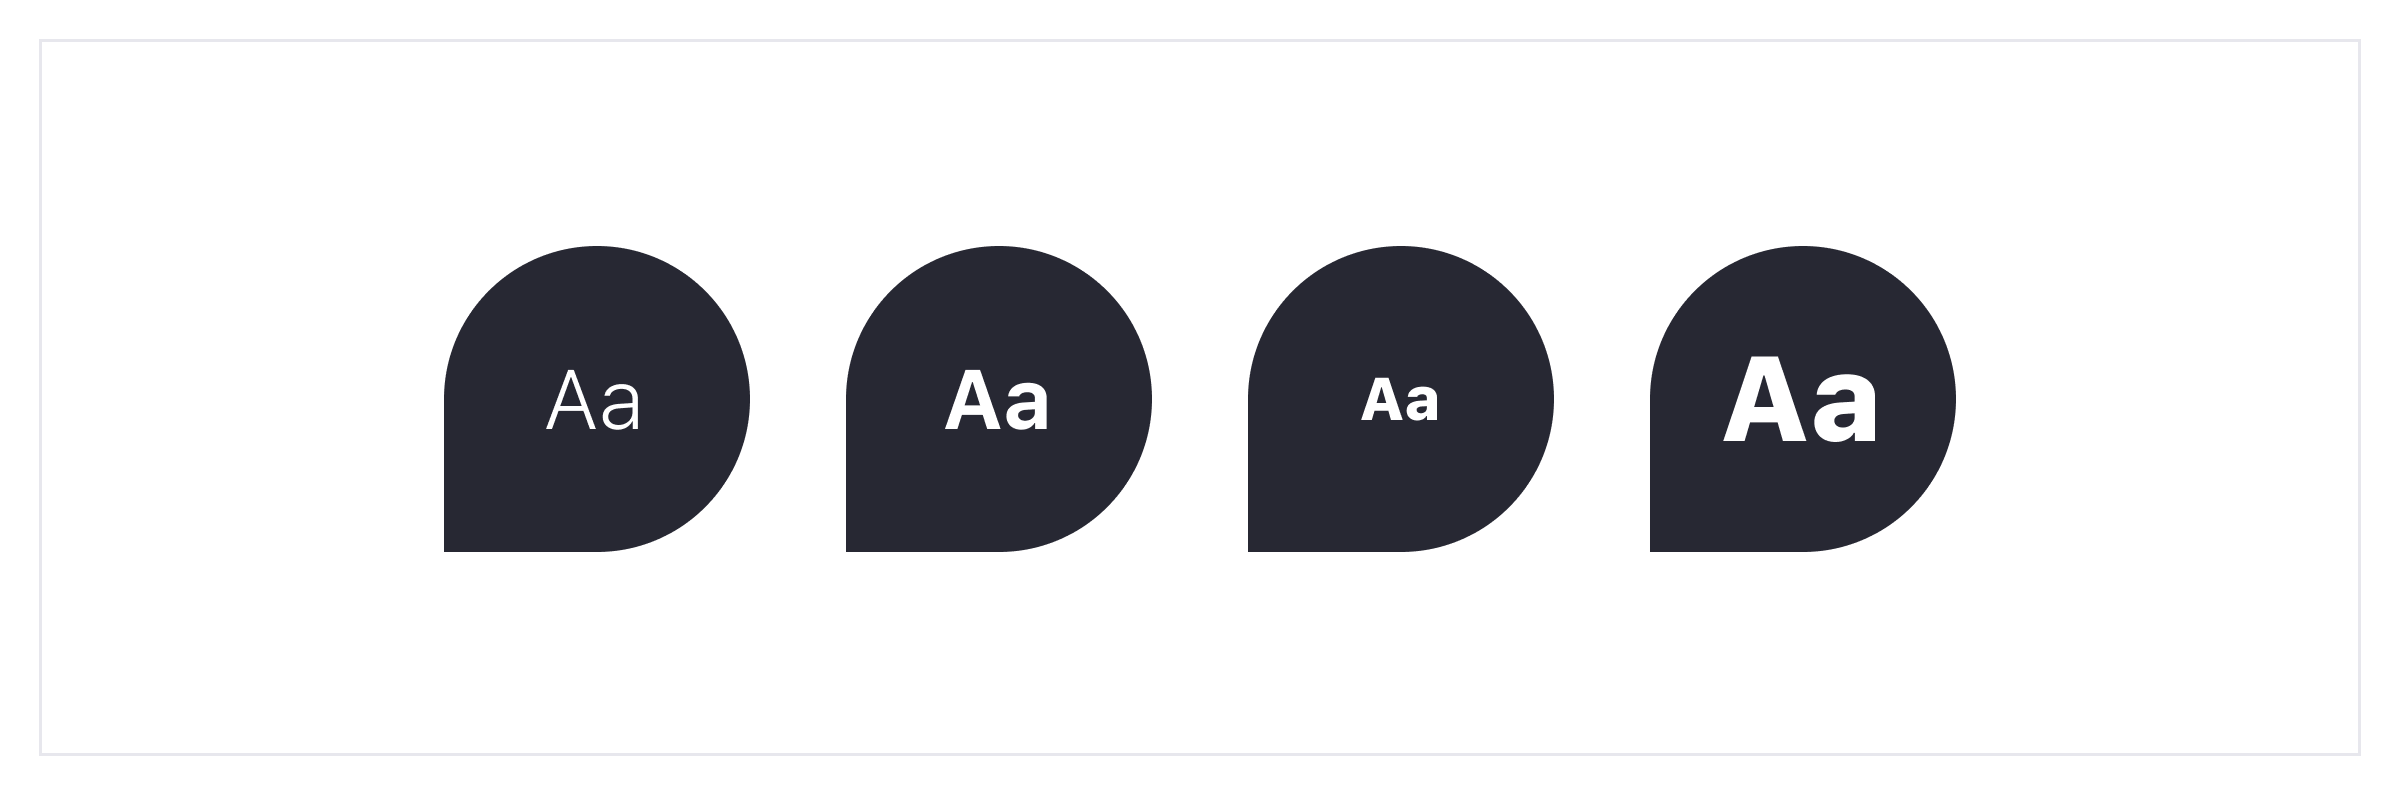 4 shapes with text inside used as examples of different text styles